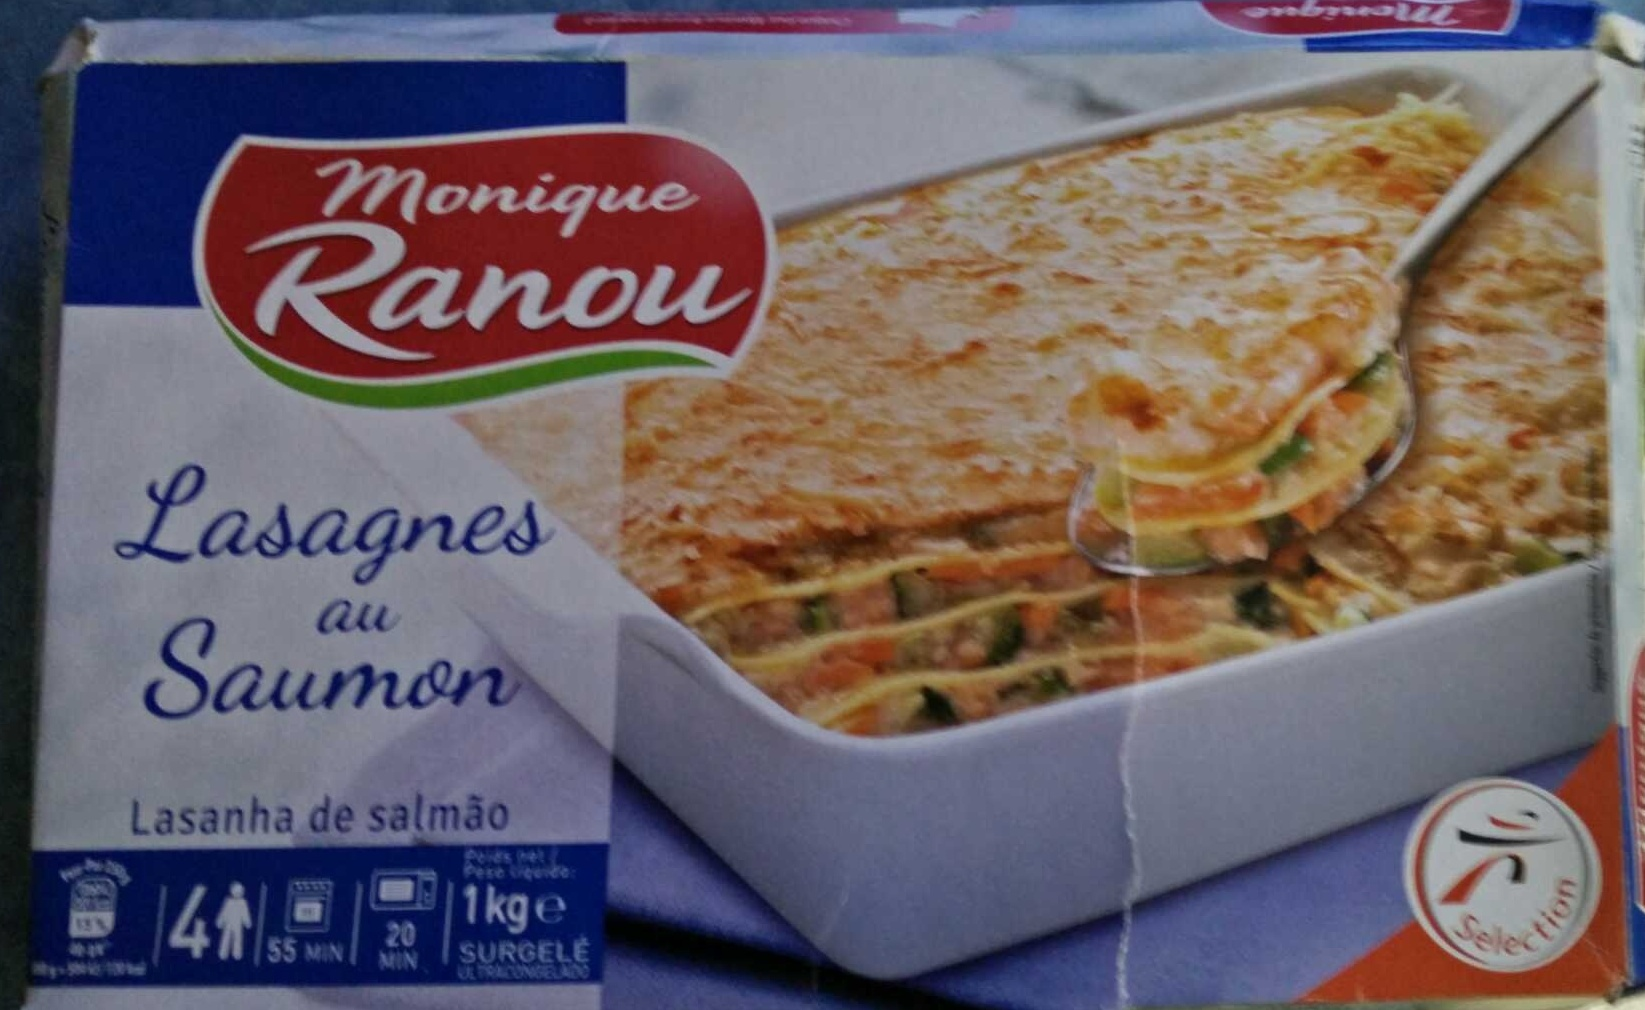 lasagnes au saumon monique ranou 1 kg. Black Bedroom Furniture Sets. Home Design Ideas